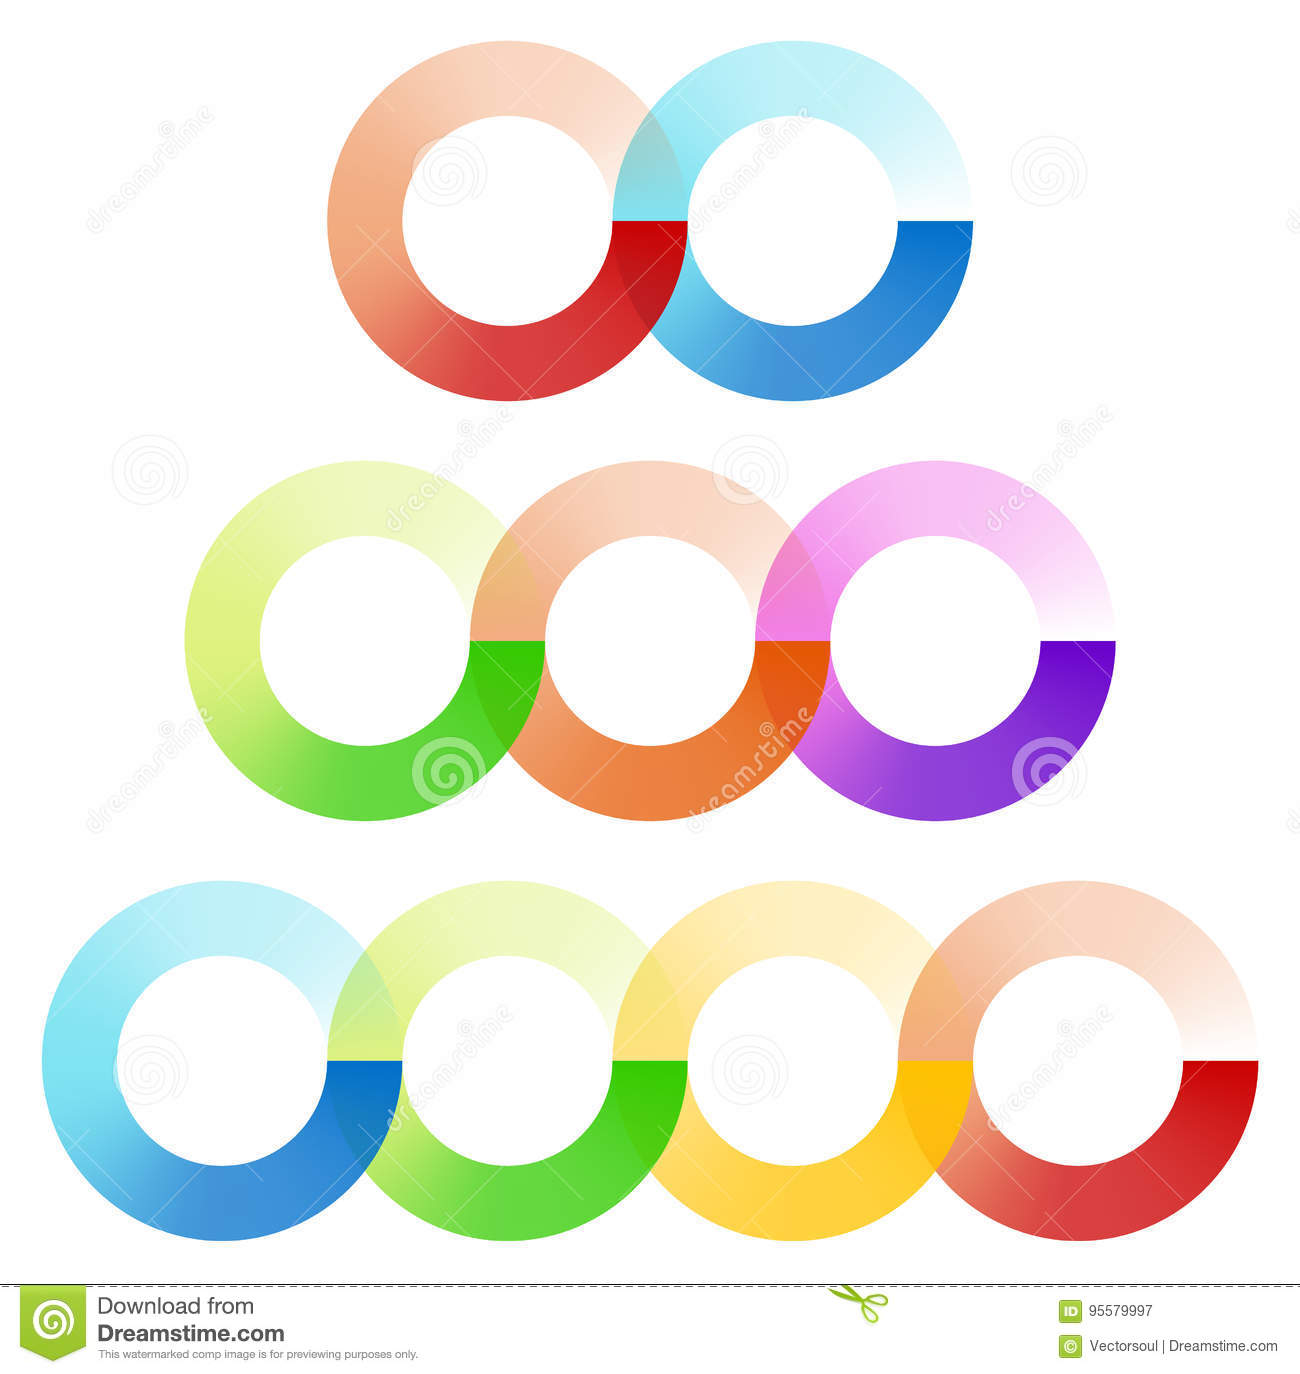 Abstract interlocking circles element set with 3 variation 2, 3